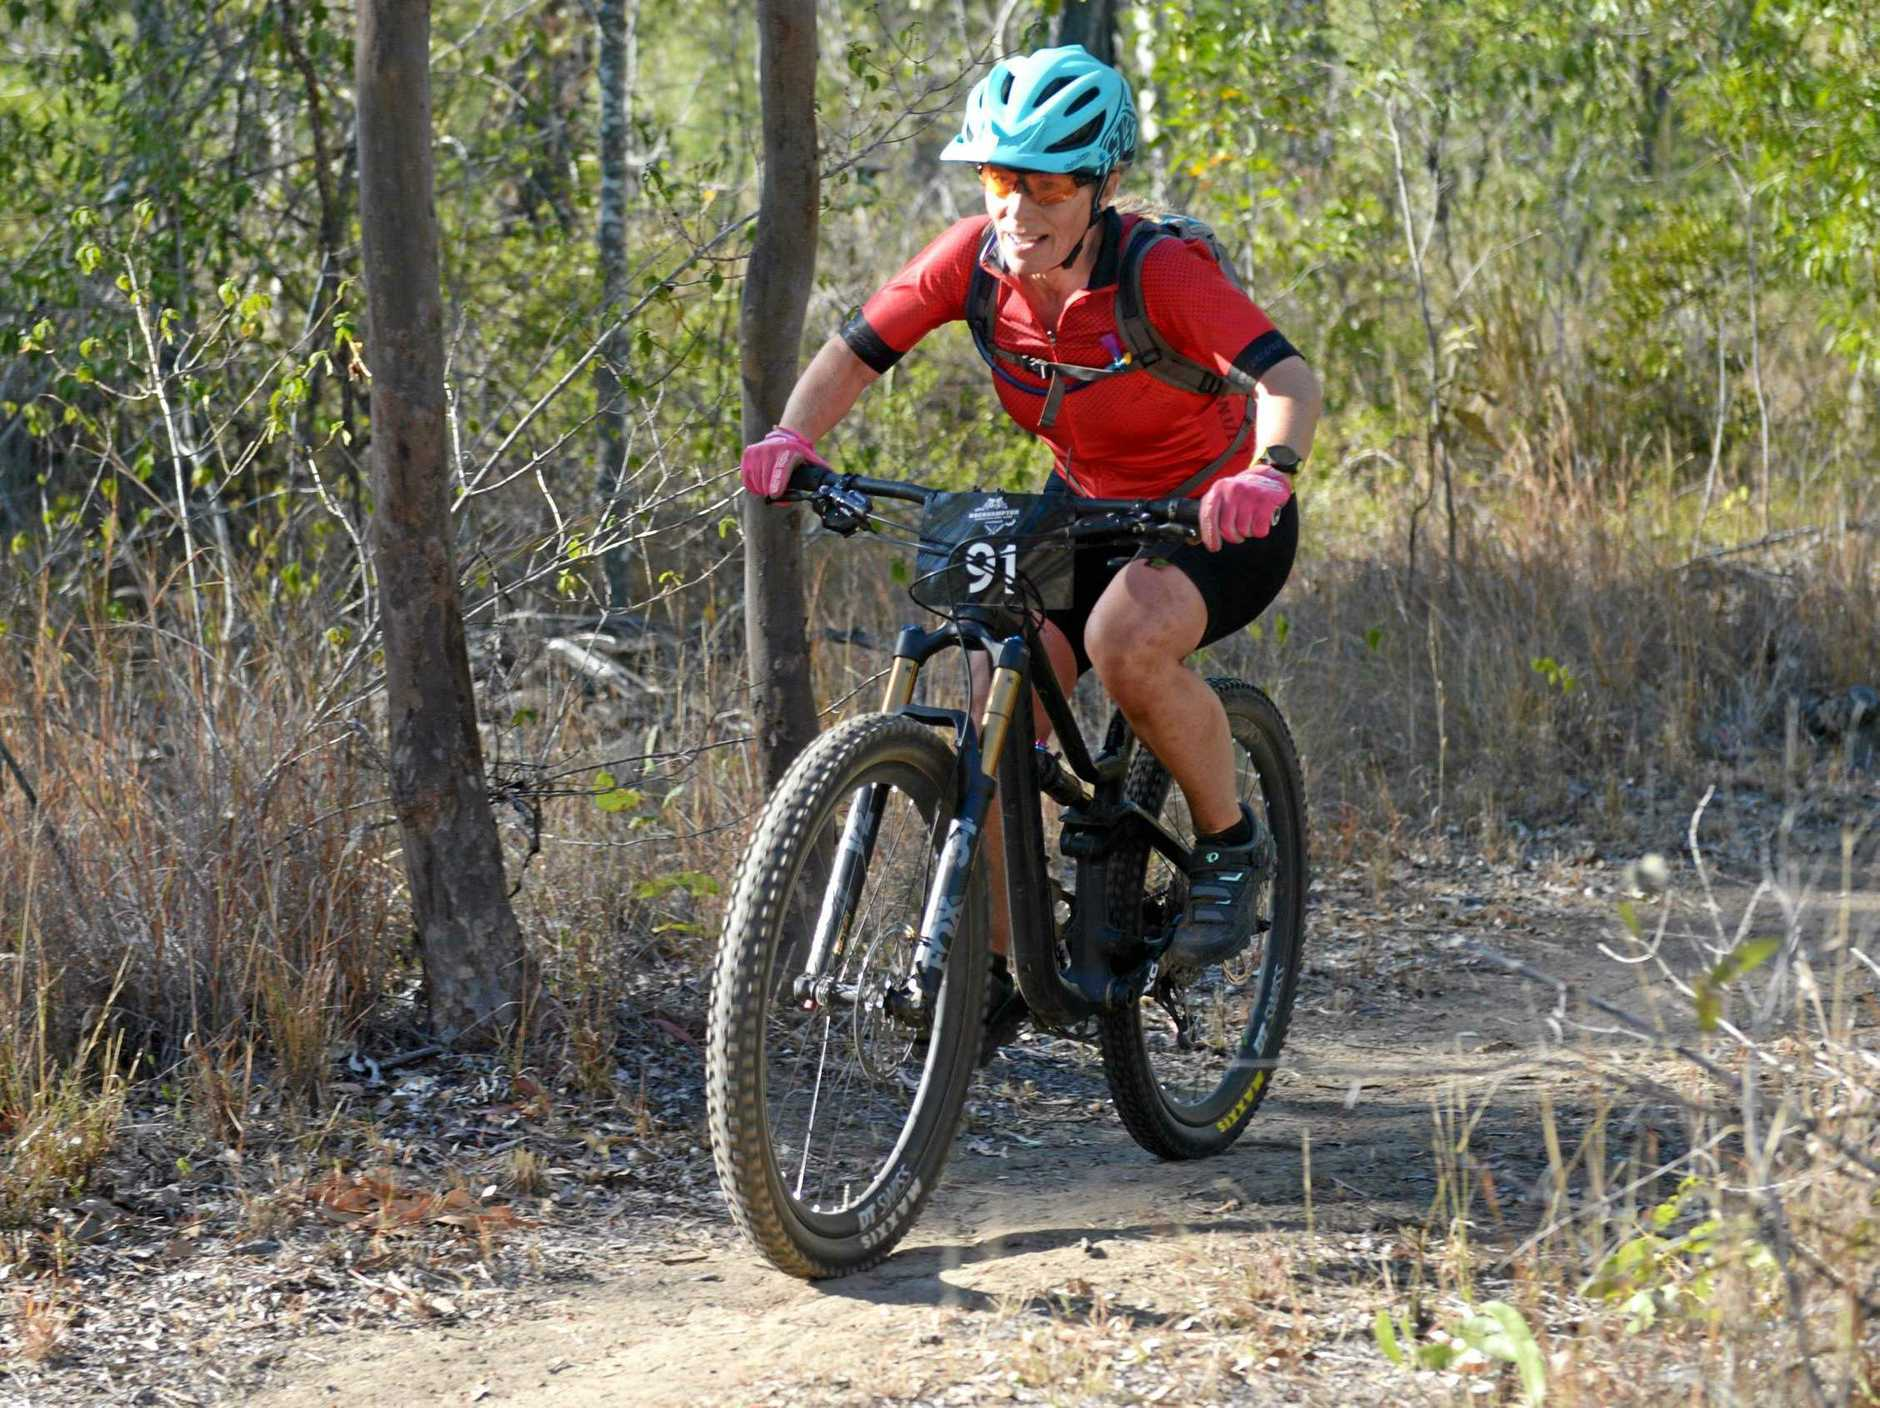 POWERING ON: Kristin Edwards races into first place in the open women's division in round three of the CQ Cross Country Series at Seeonee Park on Sunday.